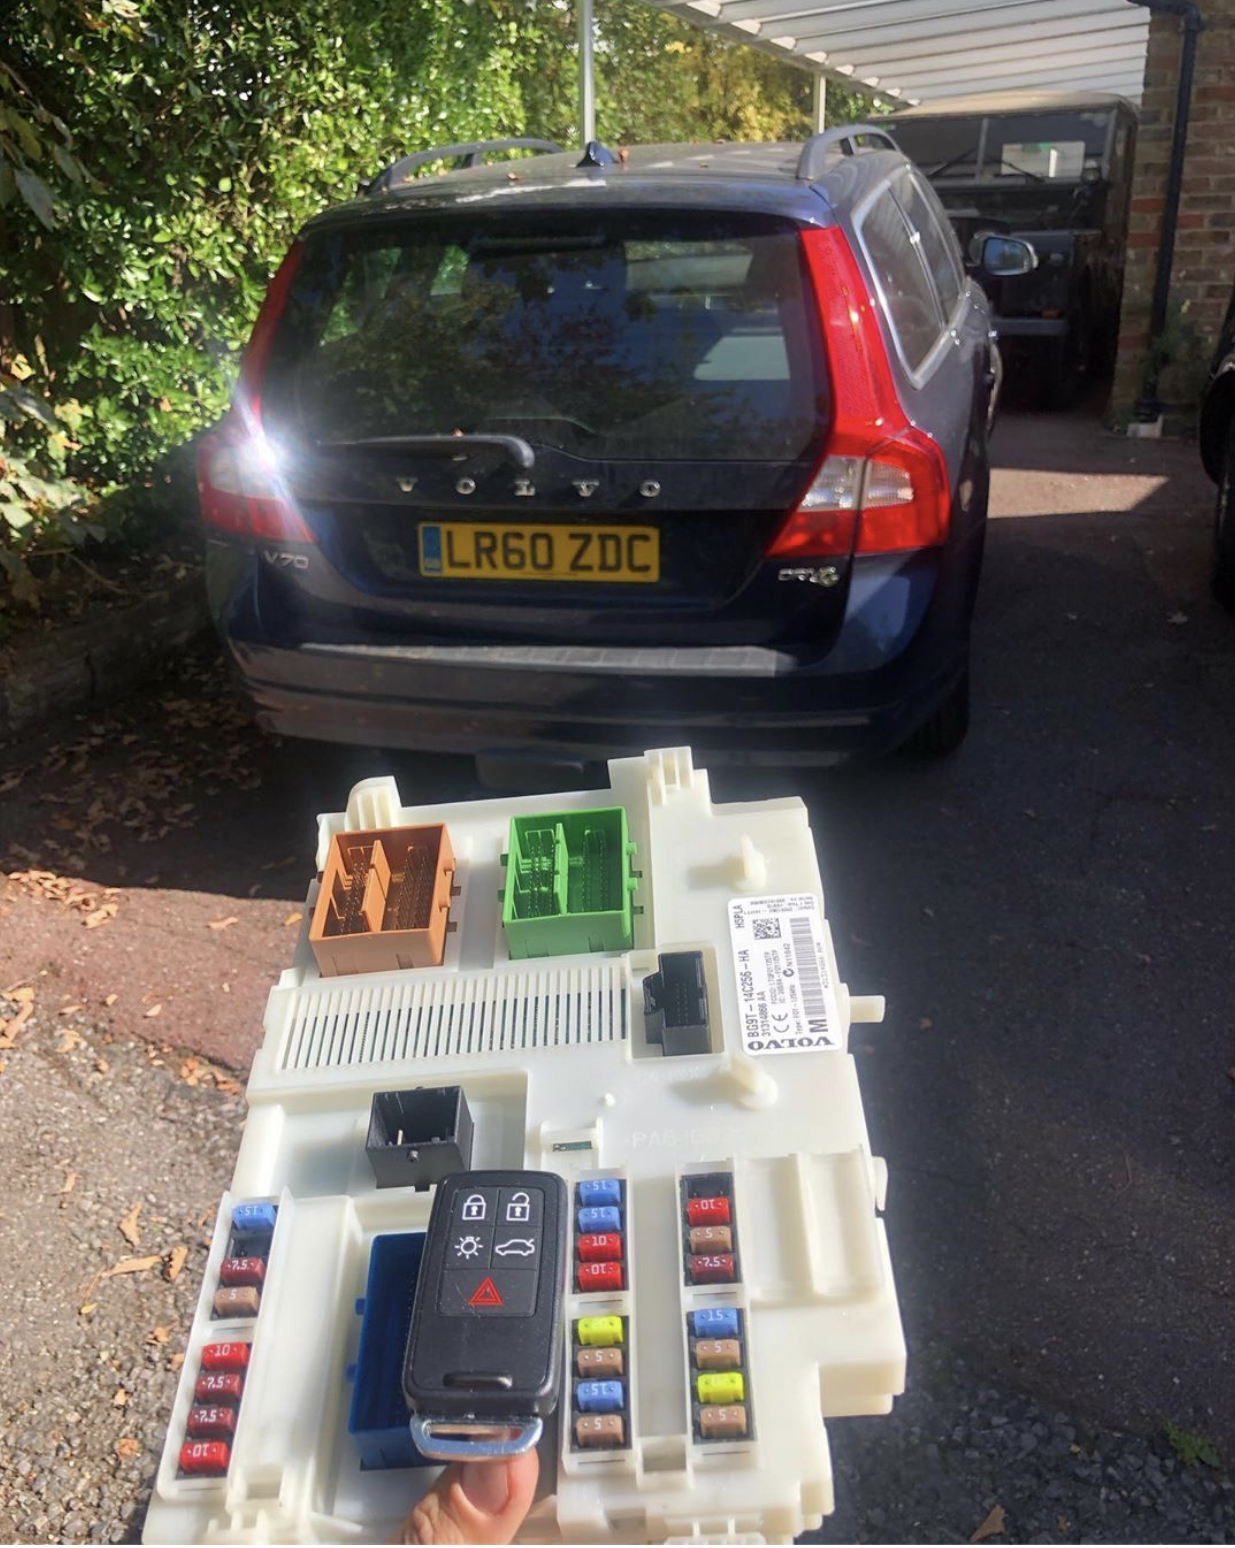 Volvo V70 Lost Key Replacement